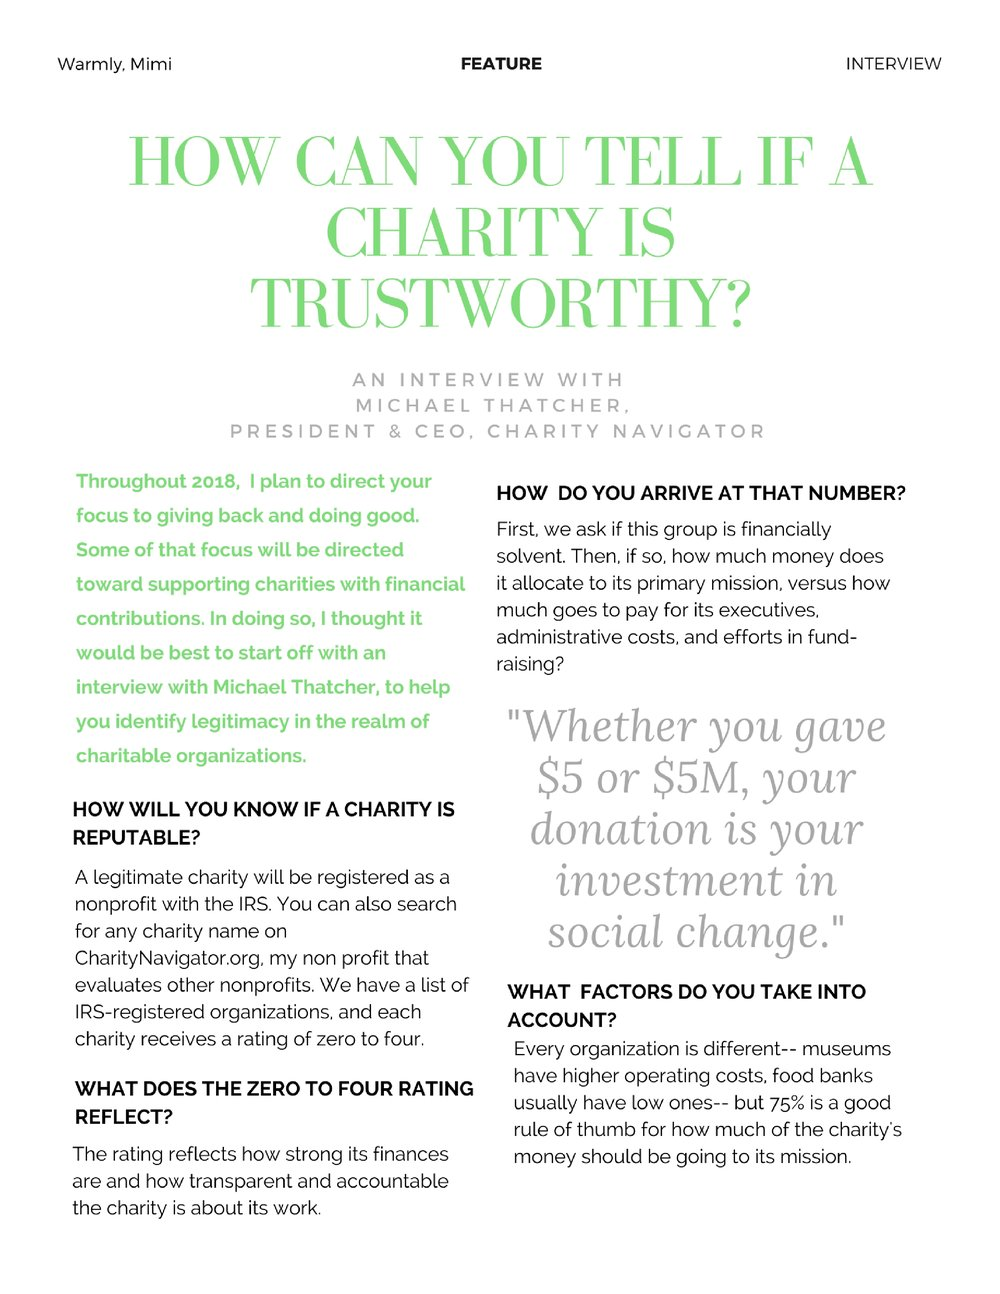 HOW CAN YOU TELL IF A CHARITY IS TRUSTWORTHY_ (2).jpg